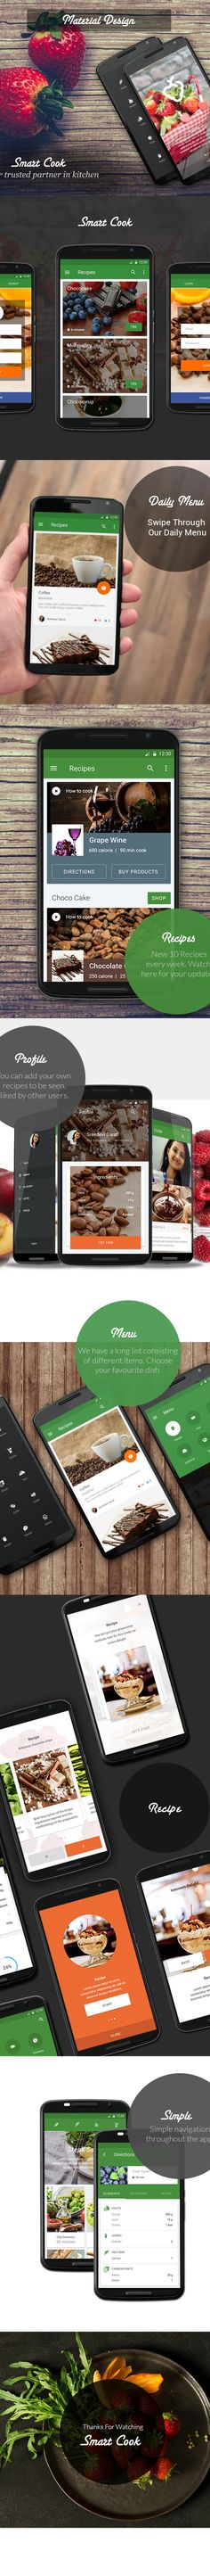 Unsolicited Material design concept of an food cooking app. Mobile Web Design, App Ui Design, Interface Design, Beacon App, Android App Design, Mobile App Templates, Cooking App, Mobile App Ui, Ui Inspiration